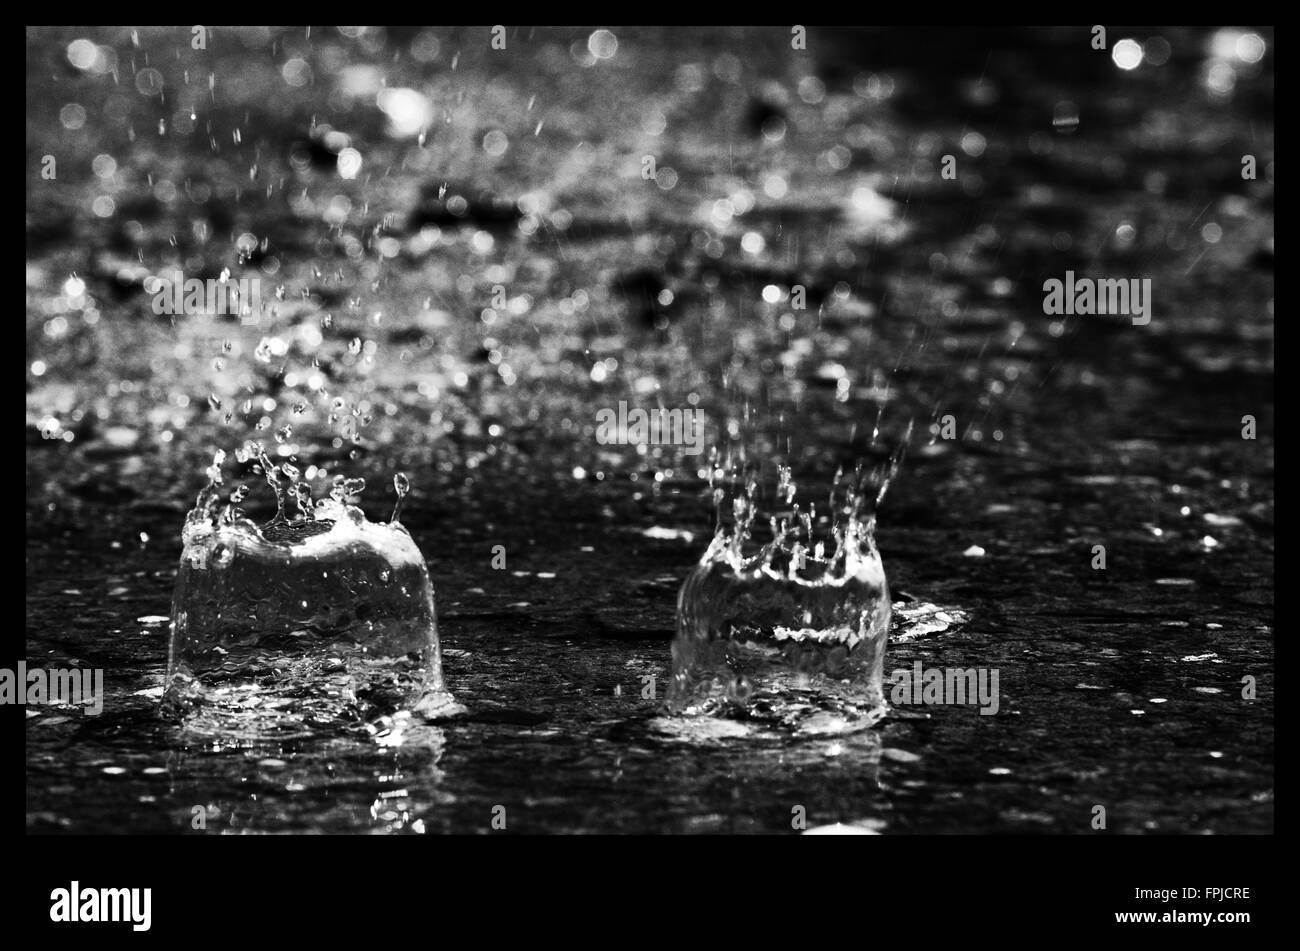 Rain drops in a puddle - Stock Image